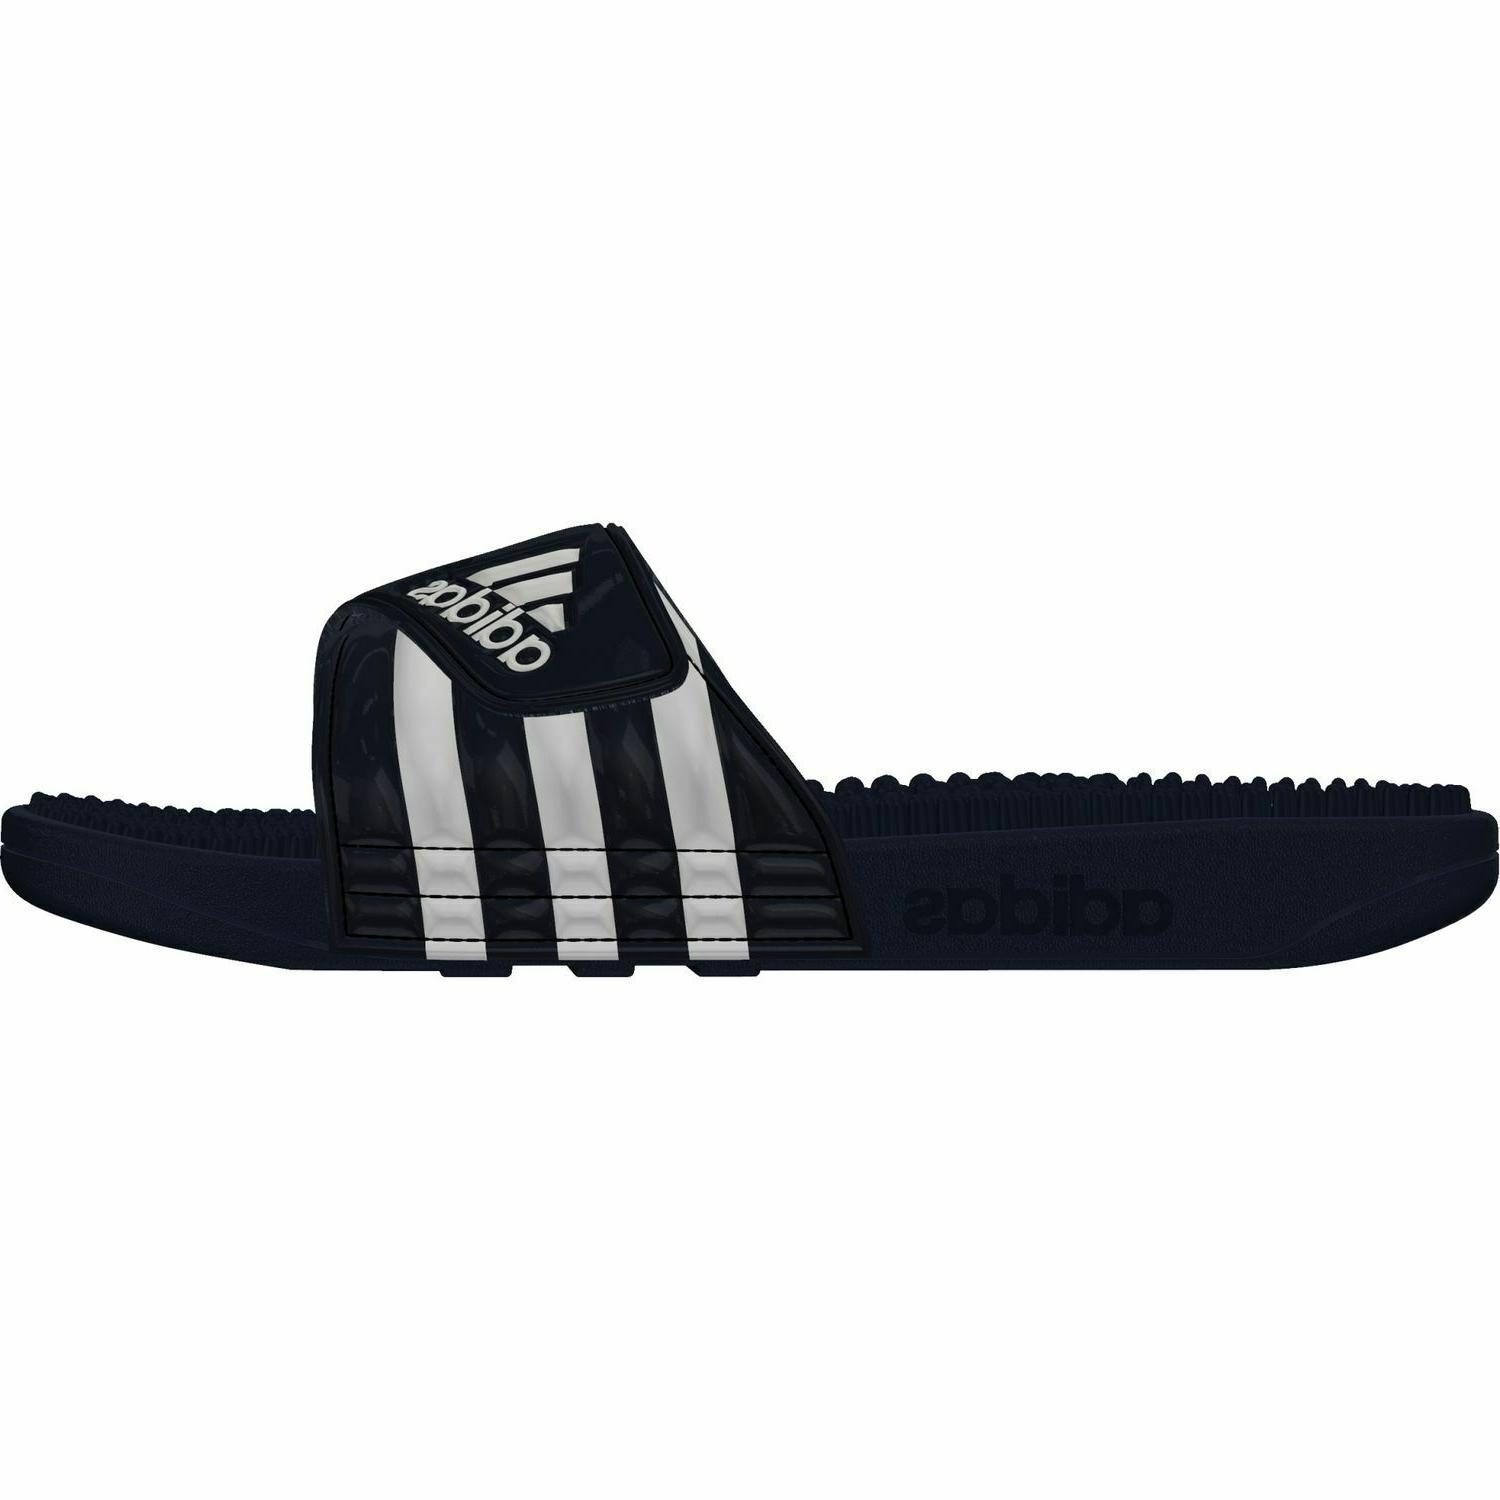 Adidas Adissage Beach Shoes Sandals Navy Size 18 54,5